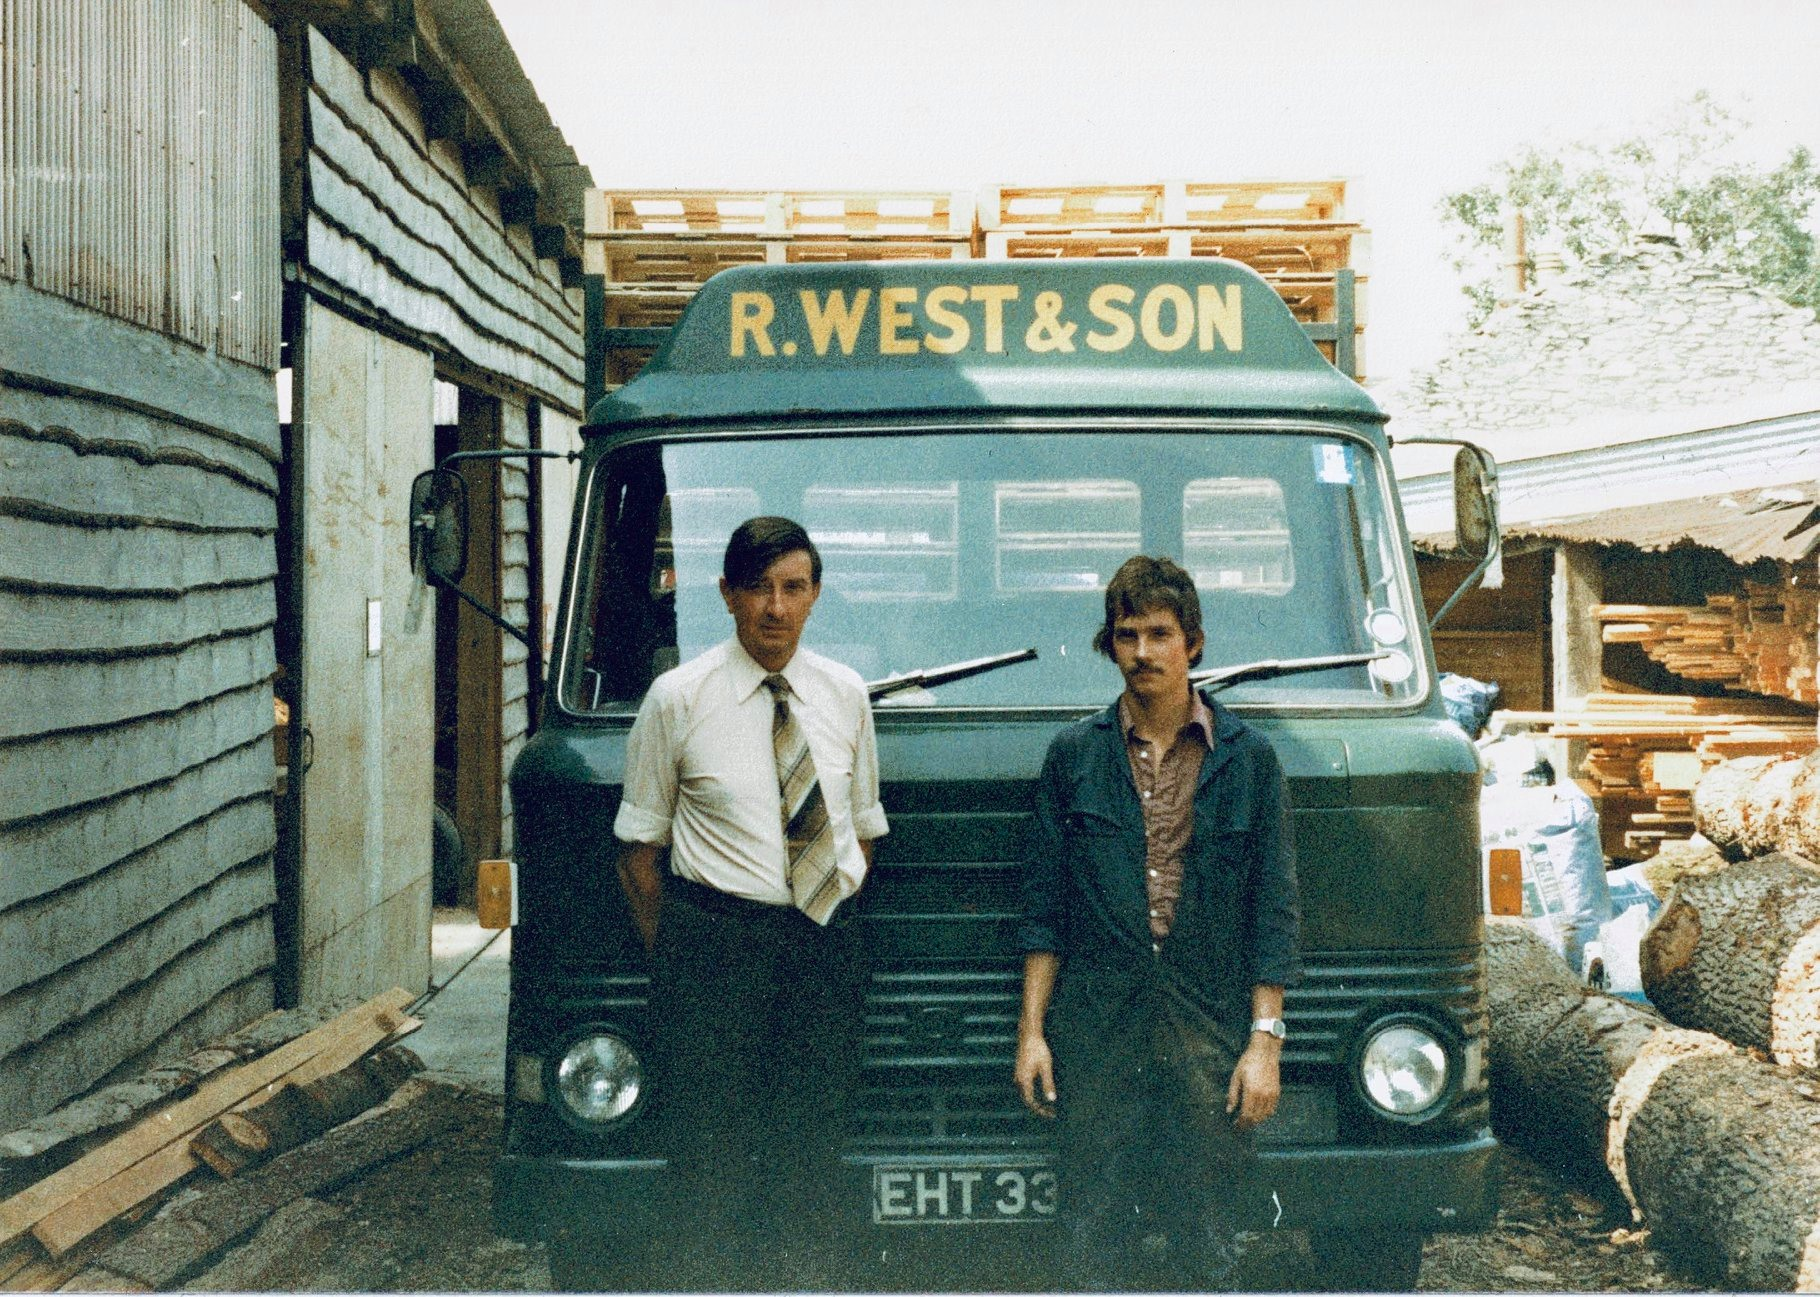 about us - who we are - R.West & Son